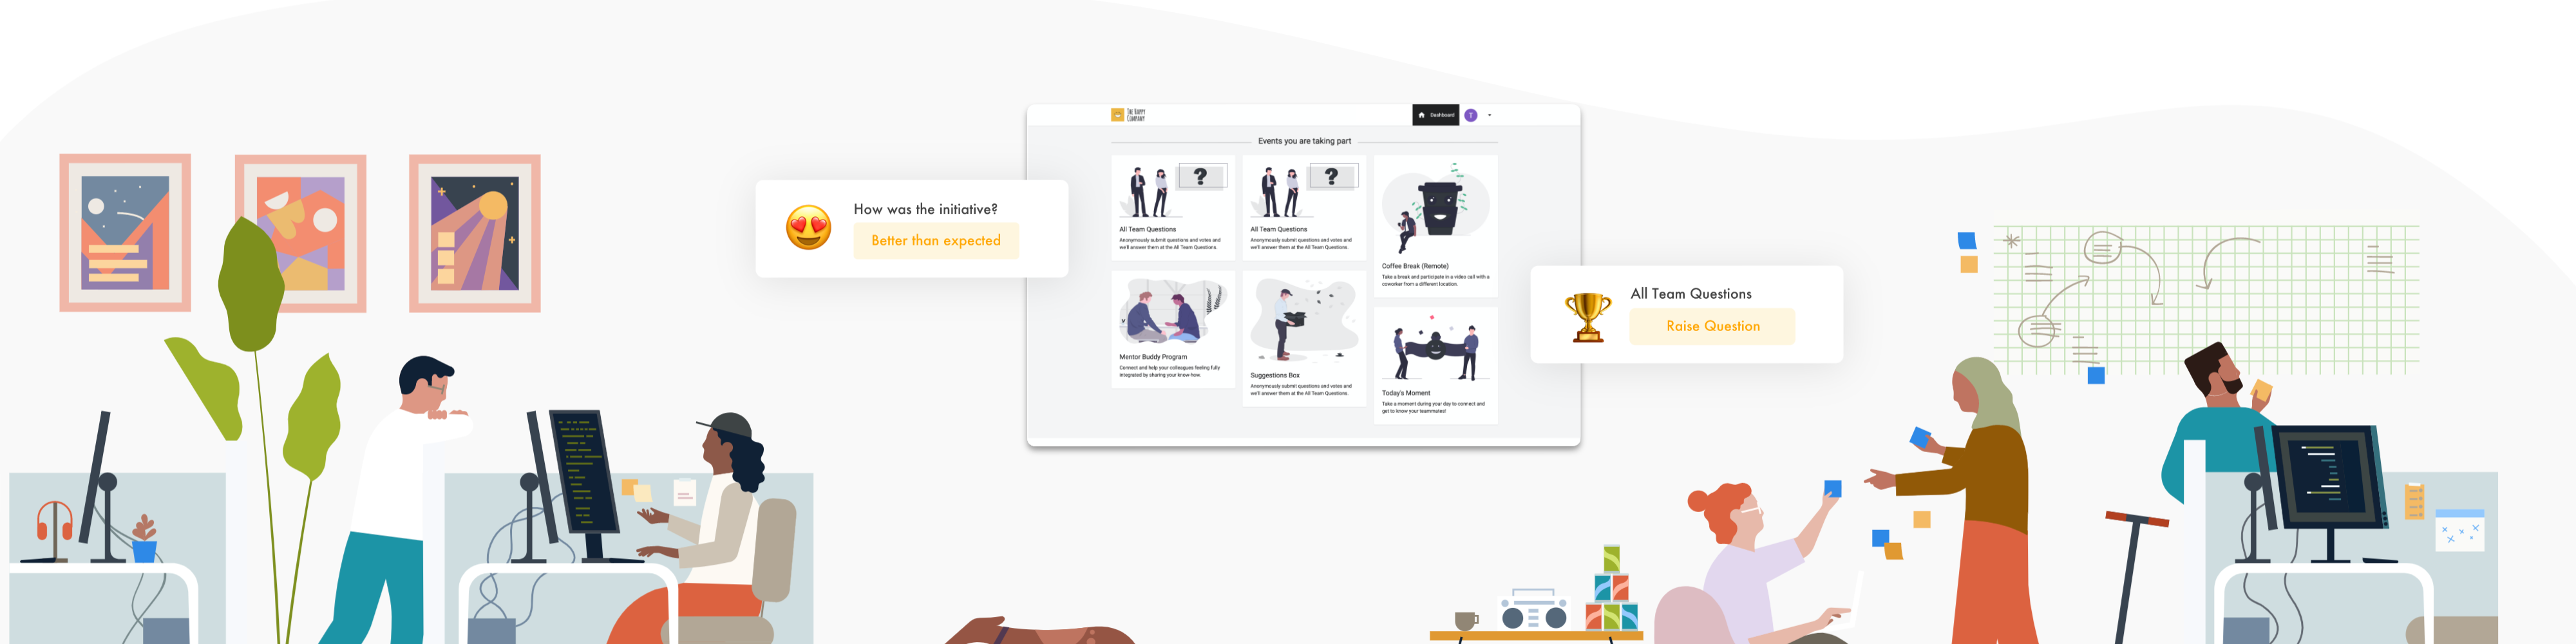 Review Wellbeing Warrior: Connect and engage employees - Appvizer